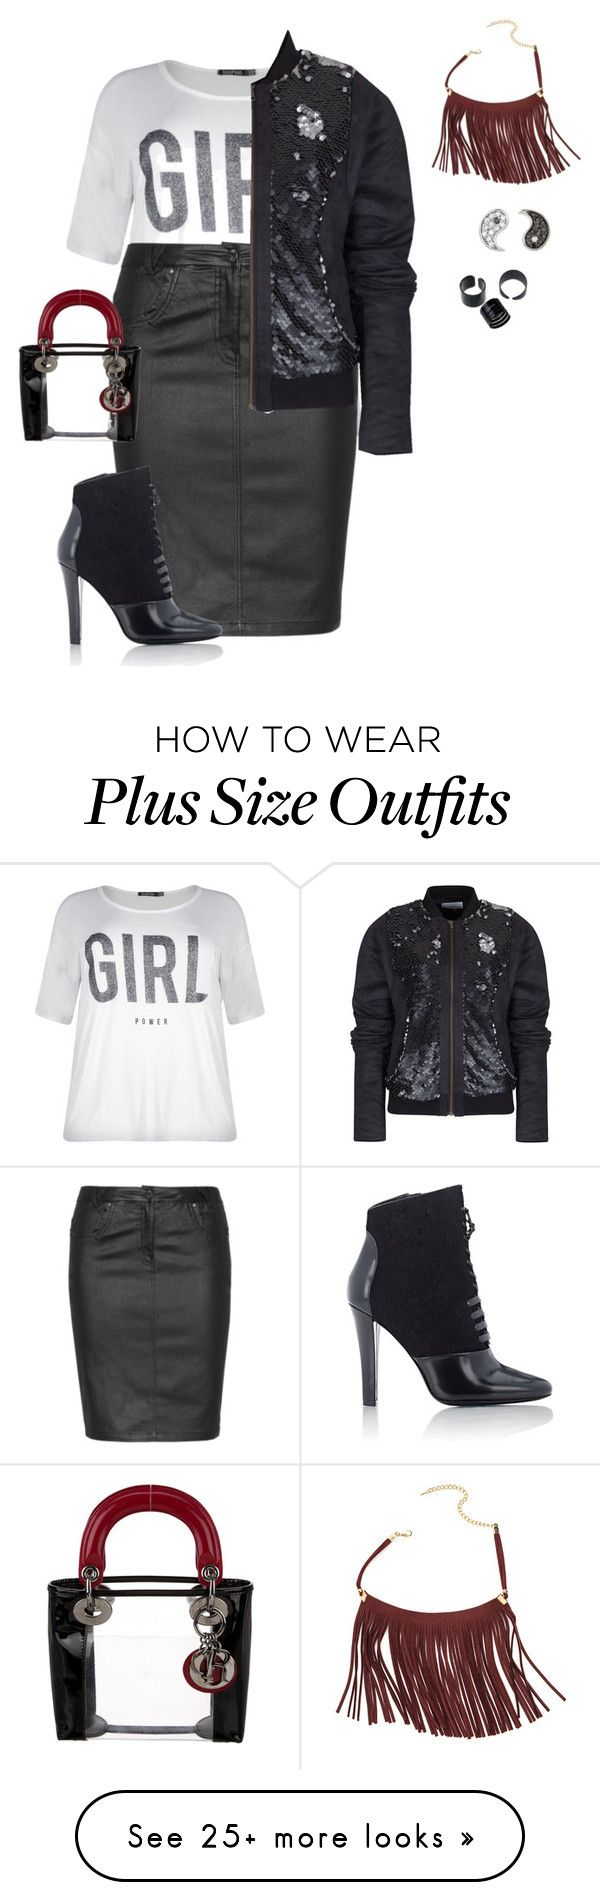 """""""plus size fall night out lk"""" by xtrak on Polyvore featuring Boohoo, Zhenzi, Rachel McMillan, 3.1 Phillip Lim, Christian Dior and Sydney Evan"""